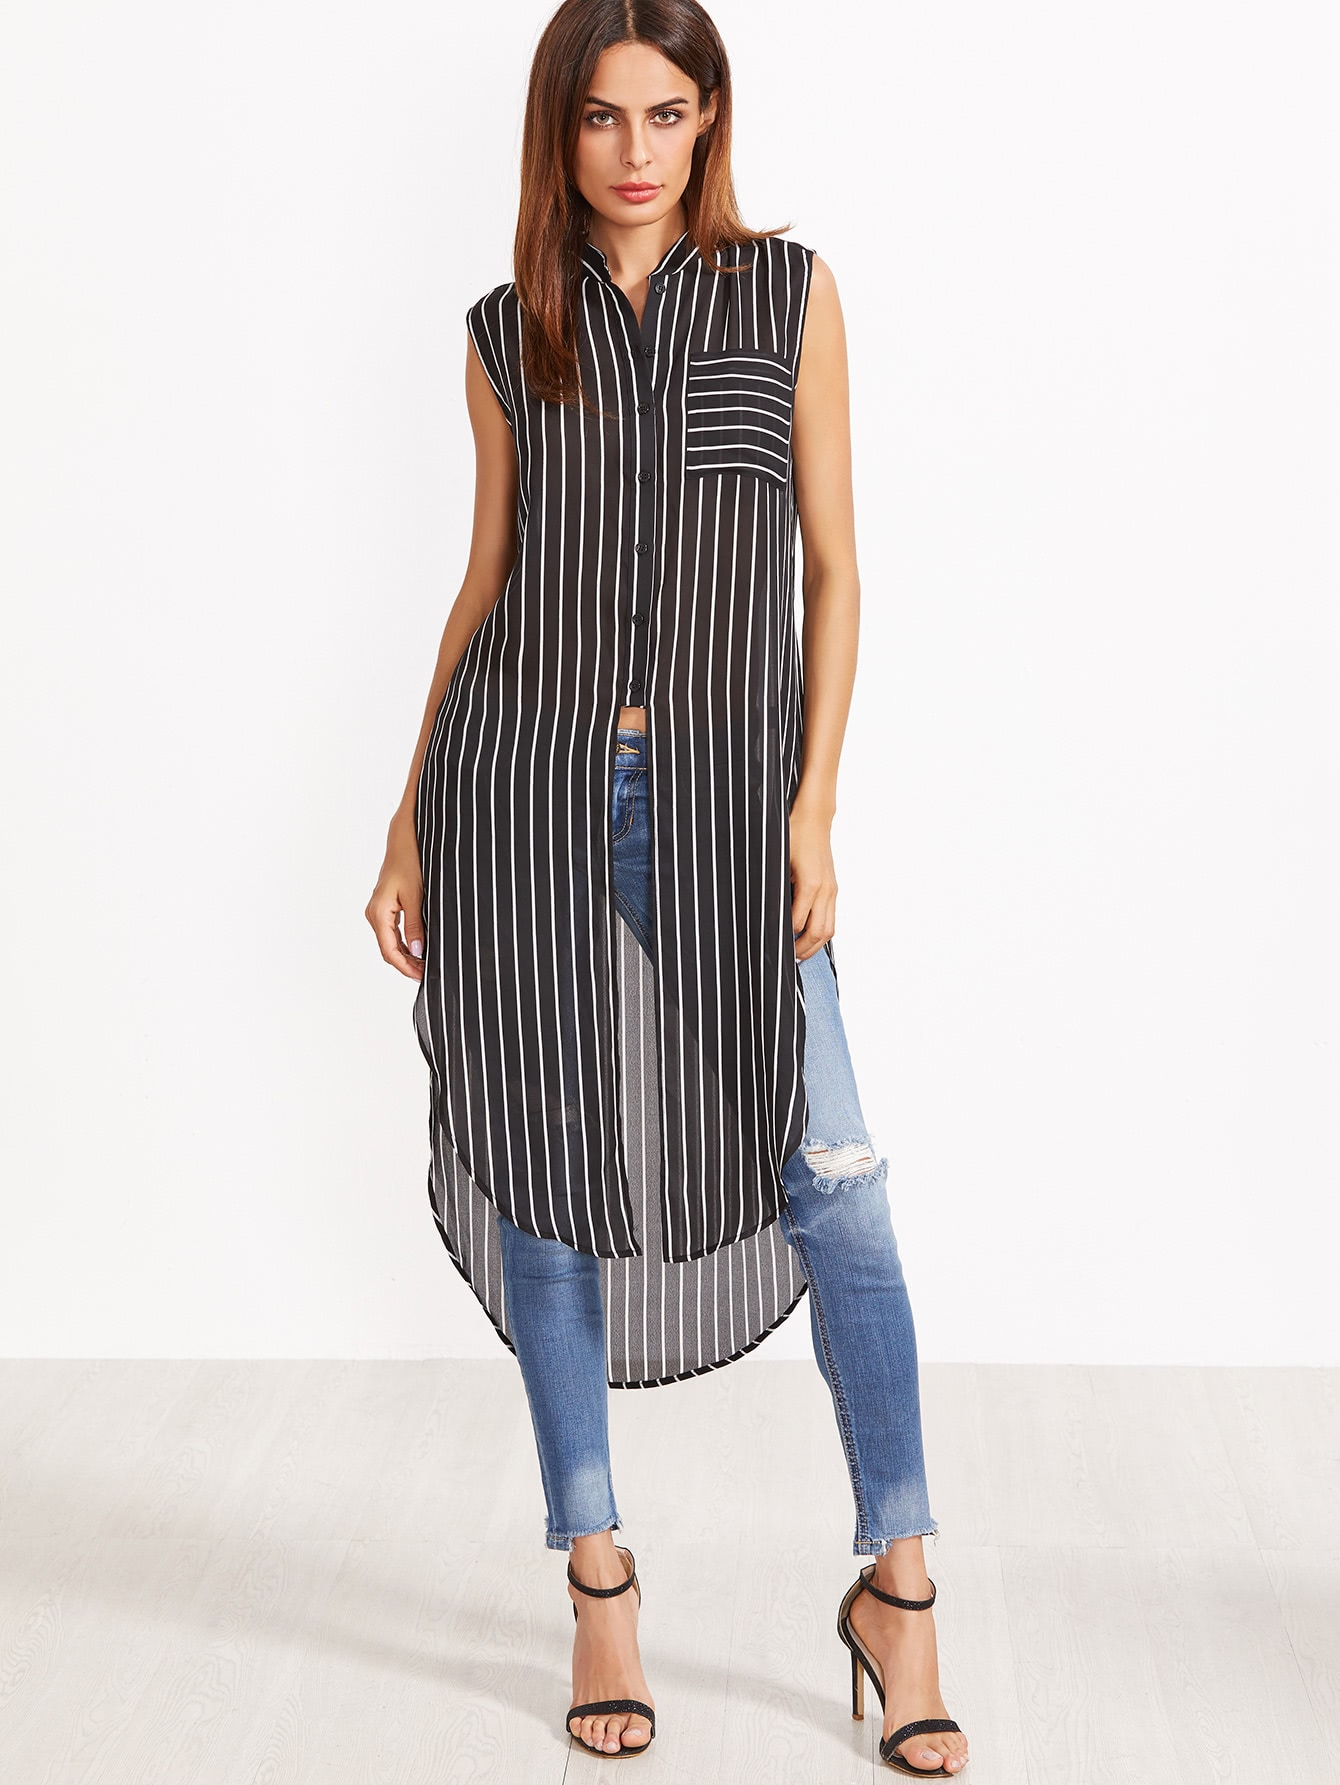 Contrast Striped Curved Hem Longline Sleeveless Blouse two tone striped front pockets curved hem blouse